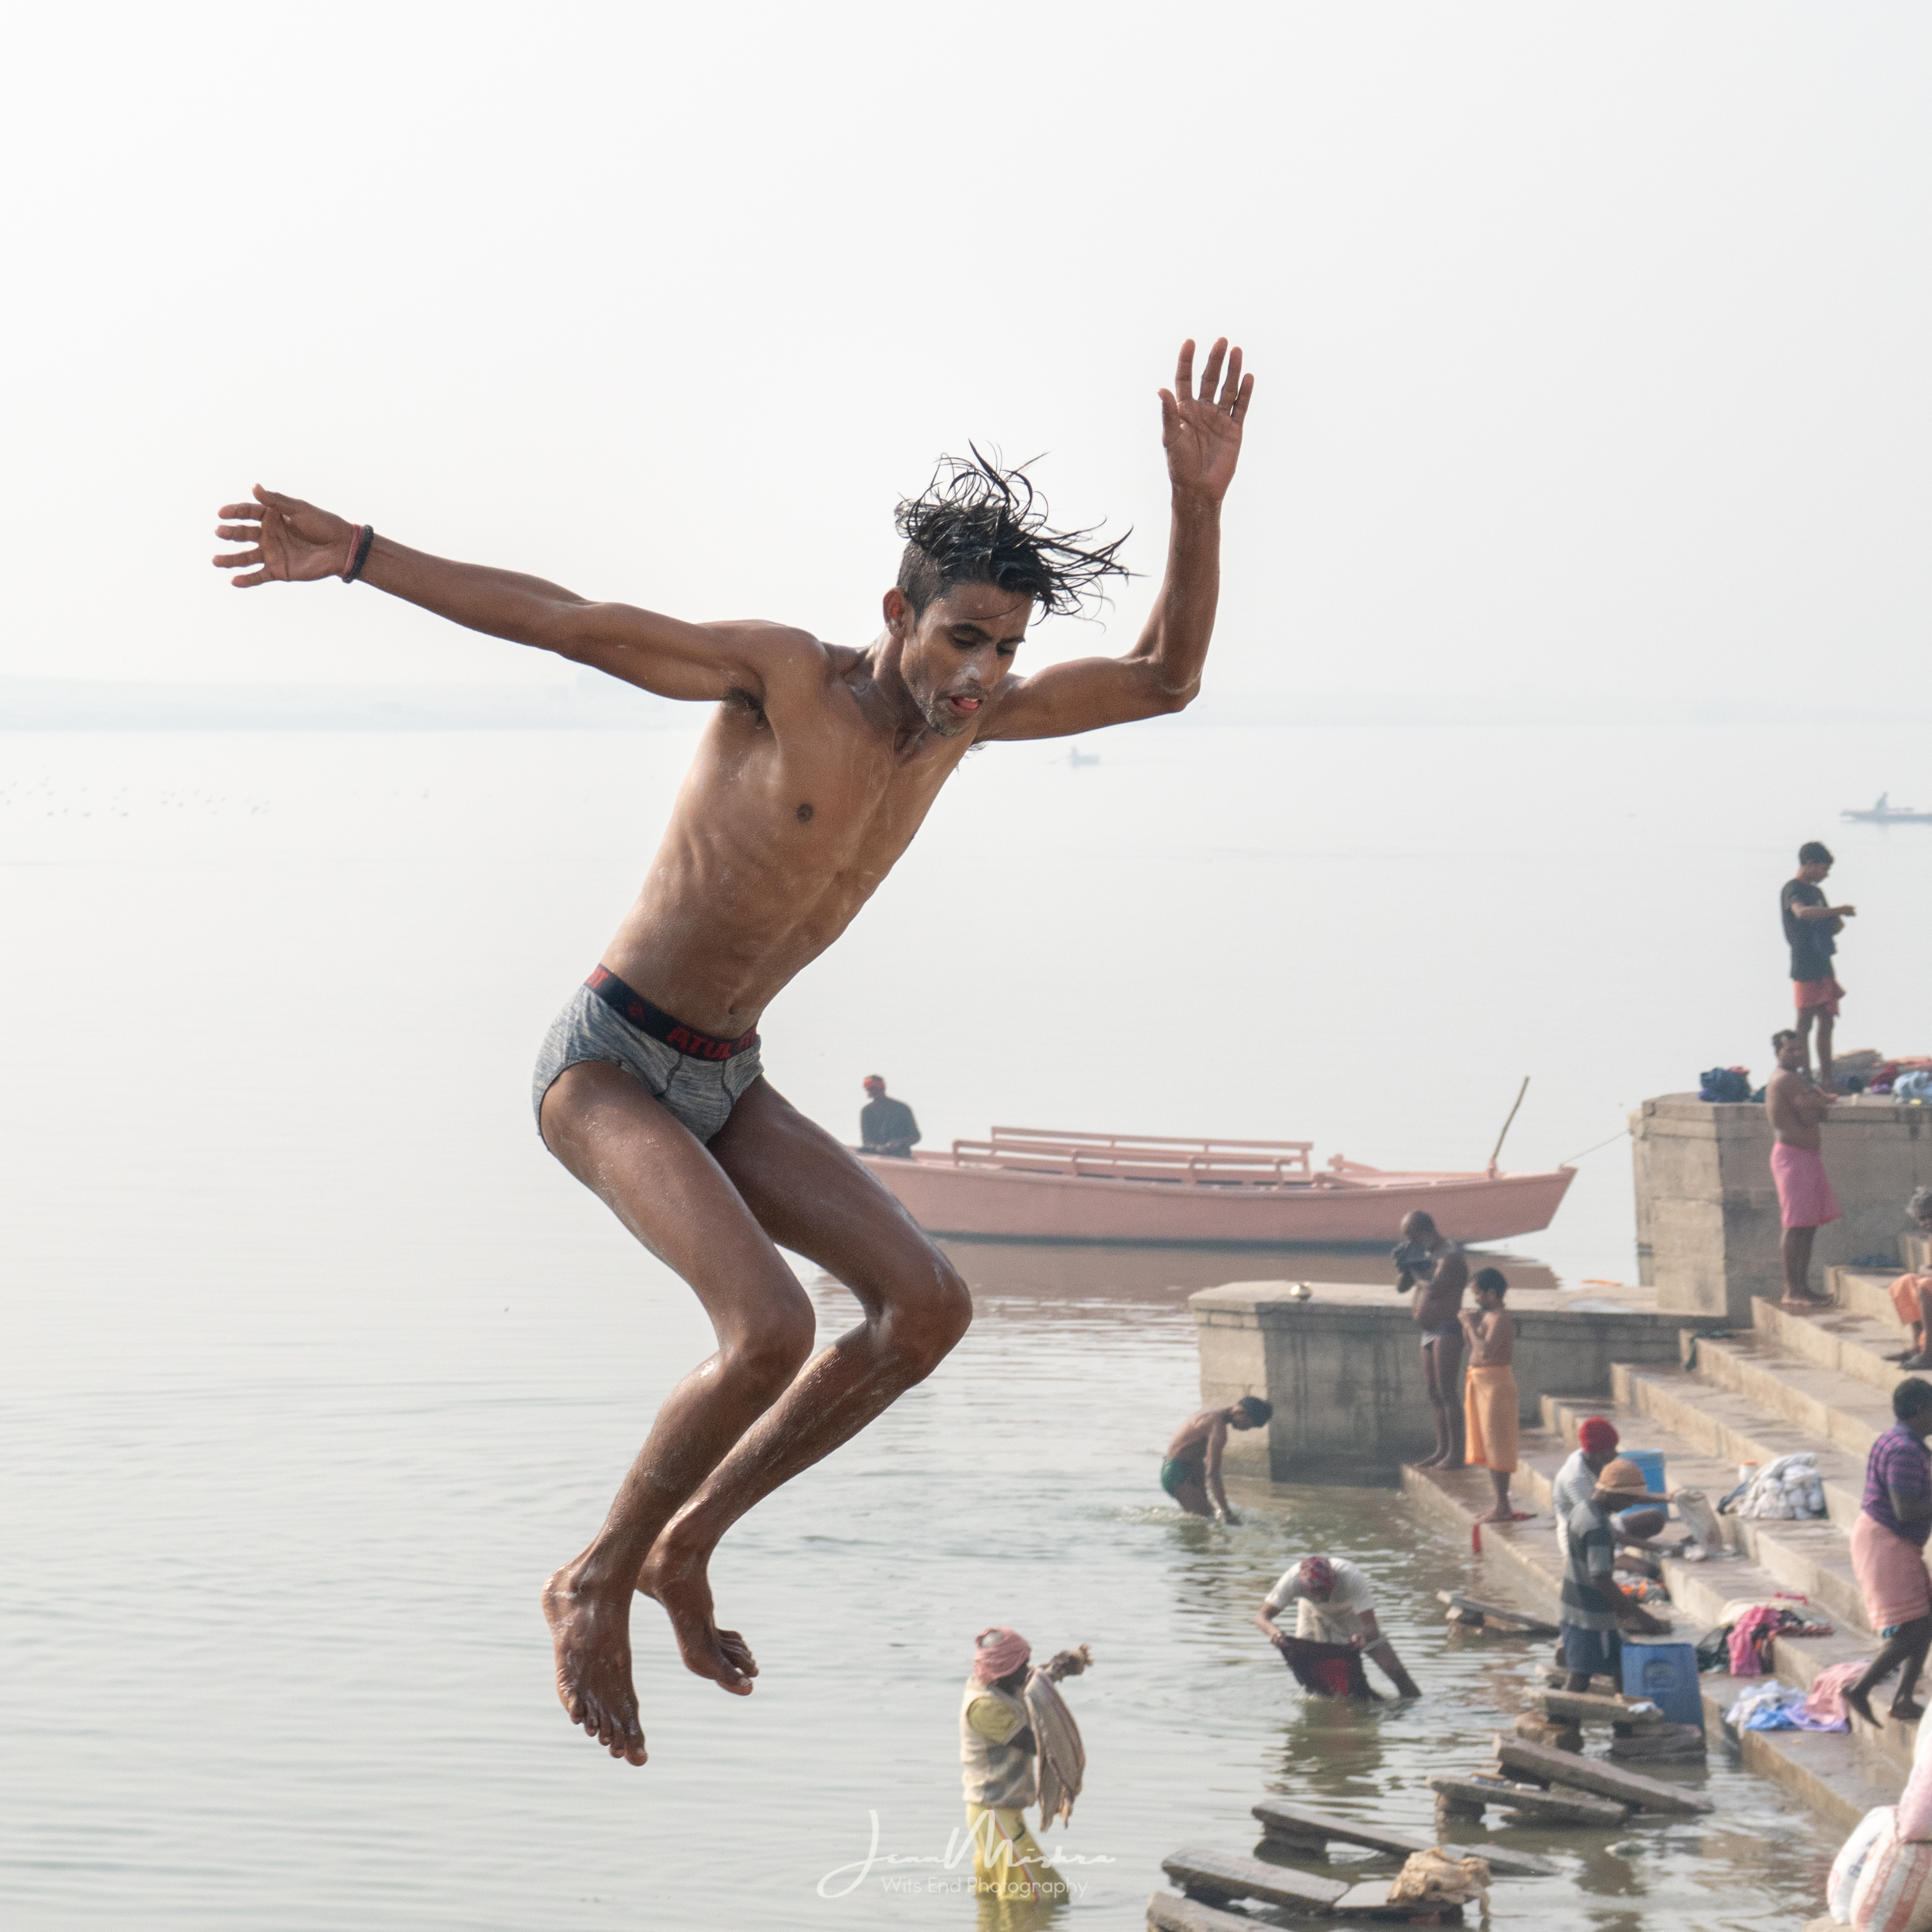 Boy jumping into Ganges River in Varanasi